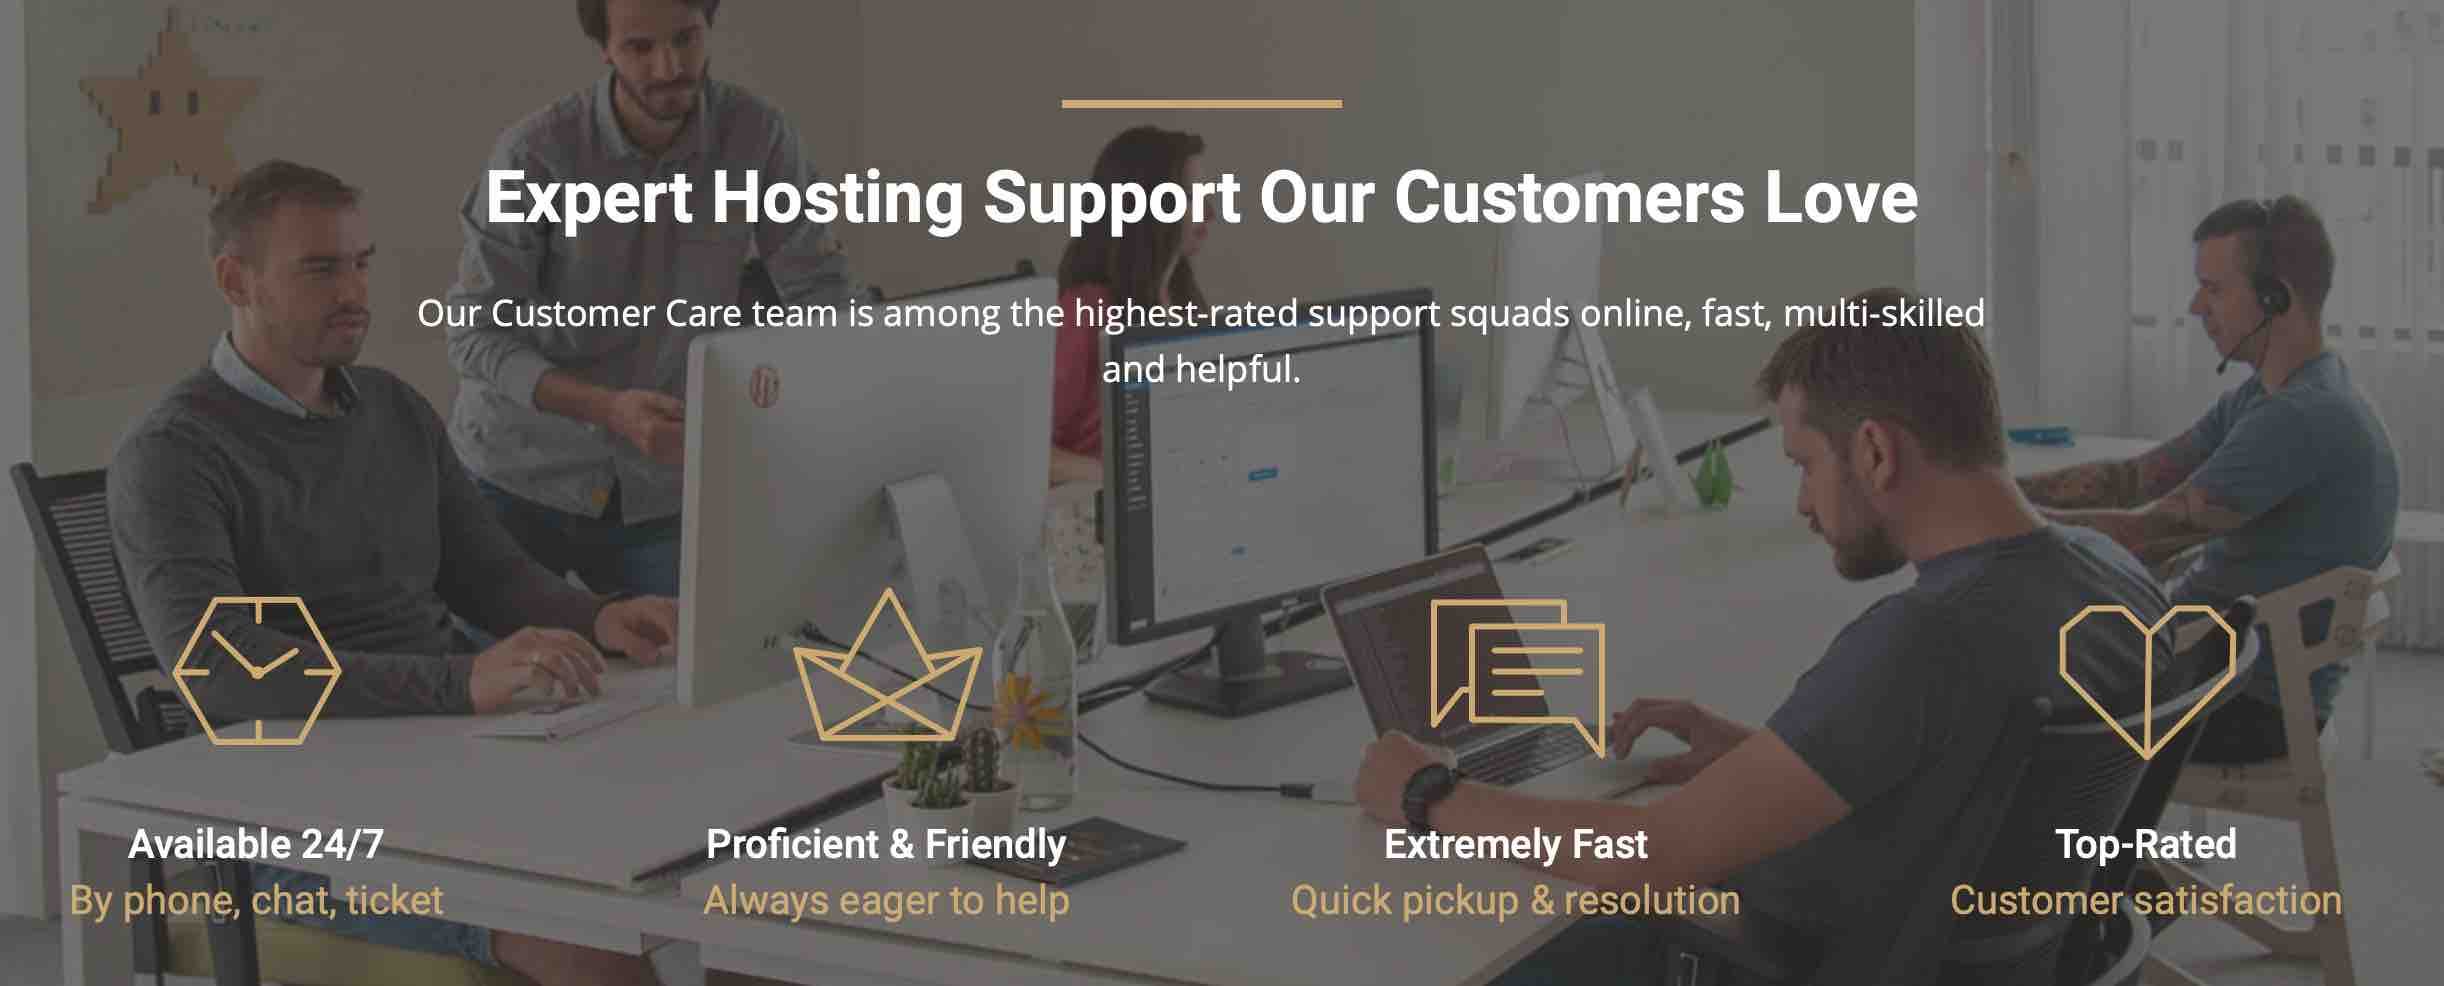 Expert Hosting Support Customers Love